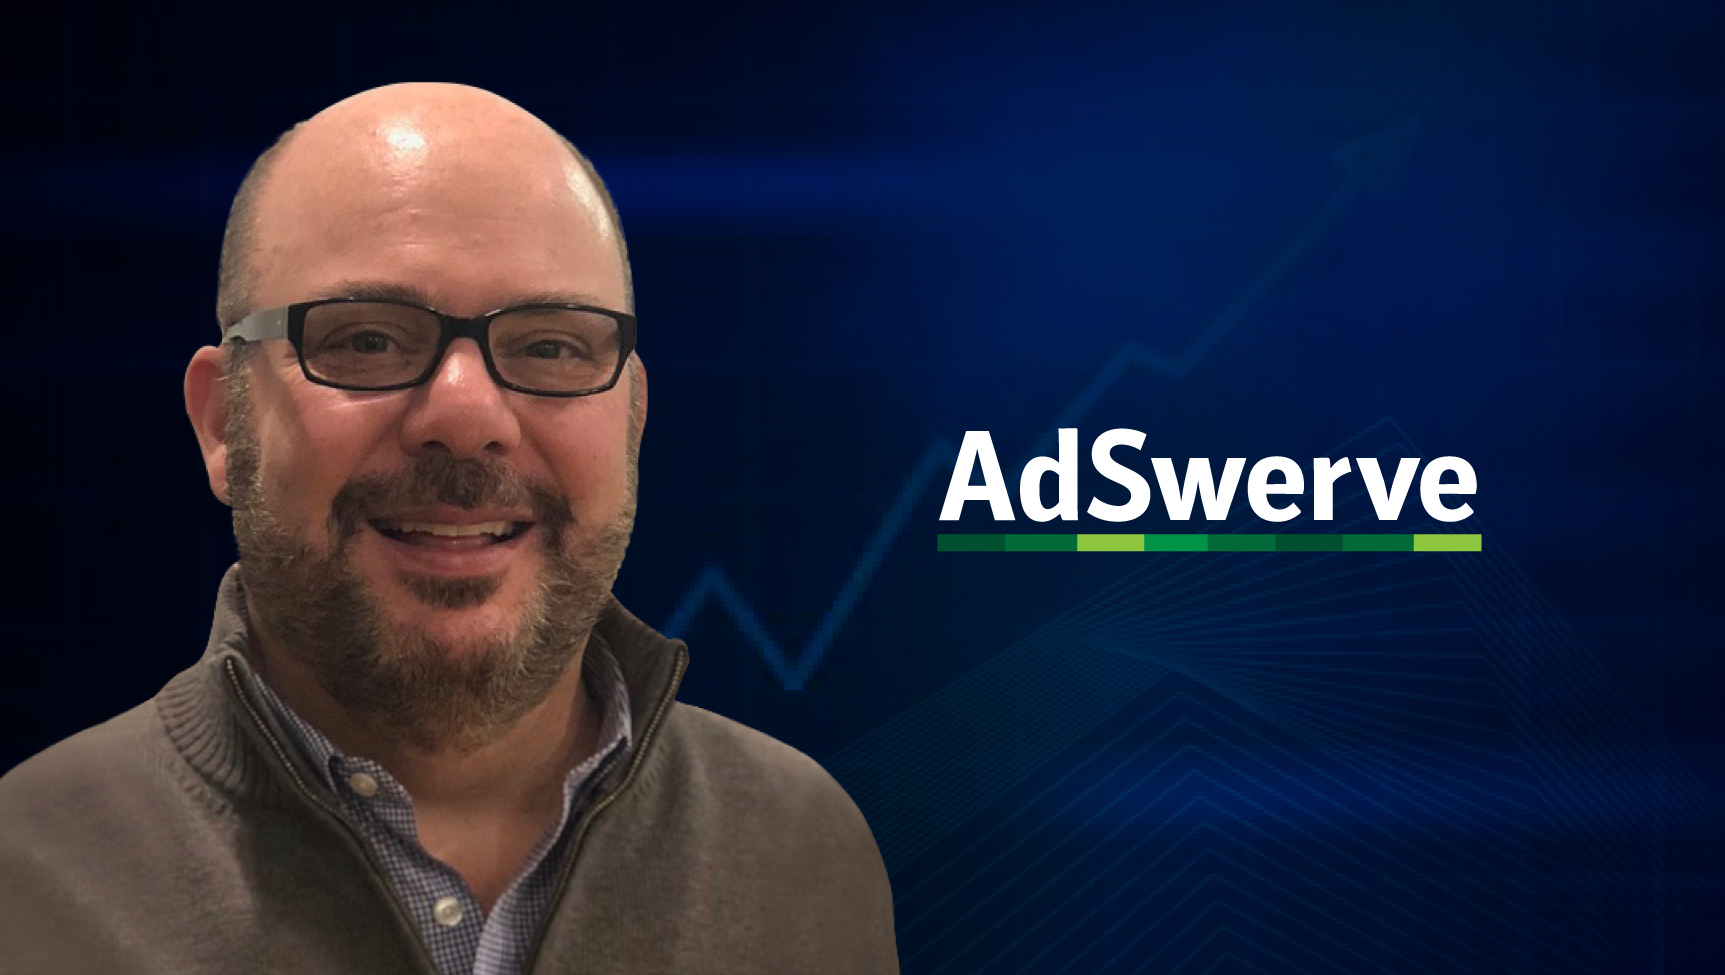 SalesTech Interview with JB Sugar, Vice President at Sales AdSwerve